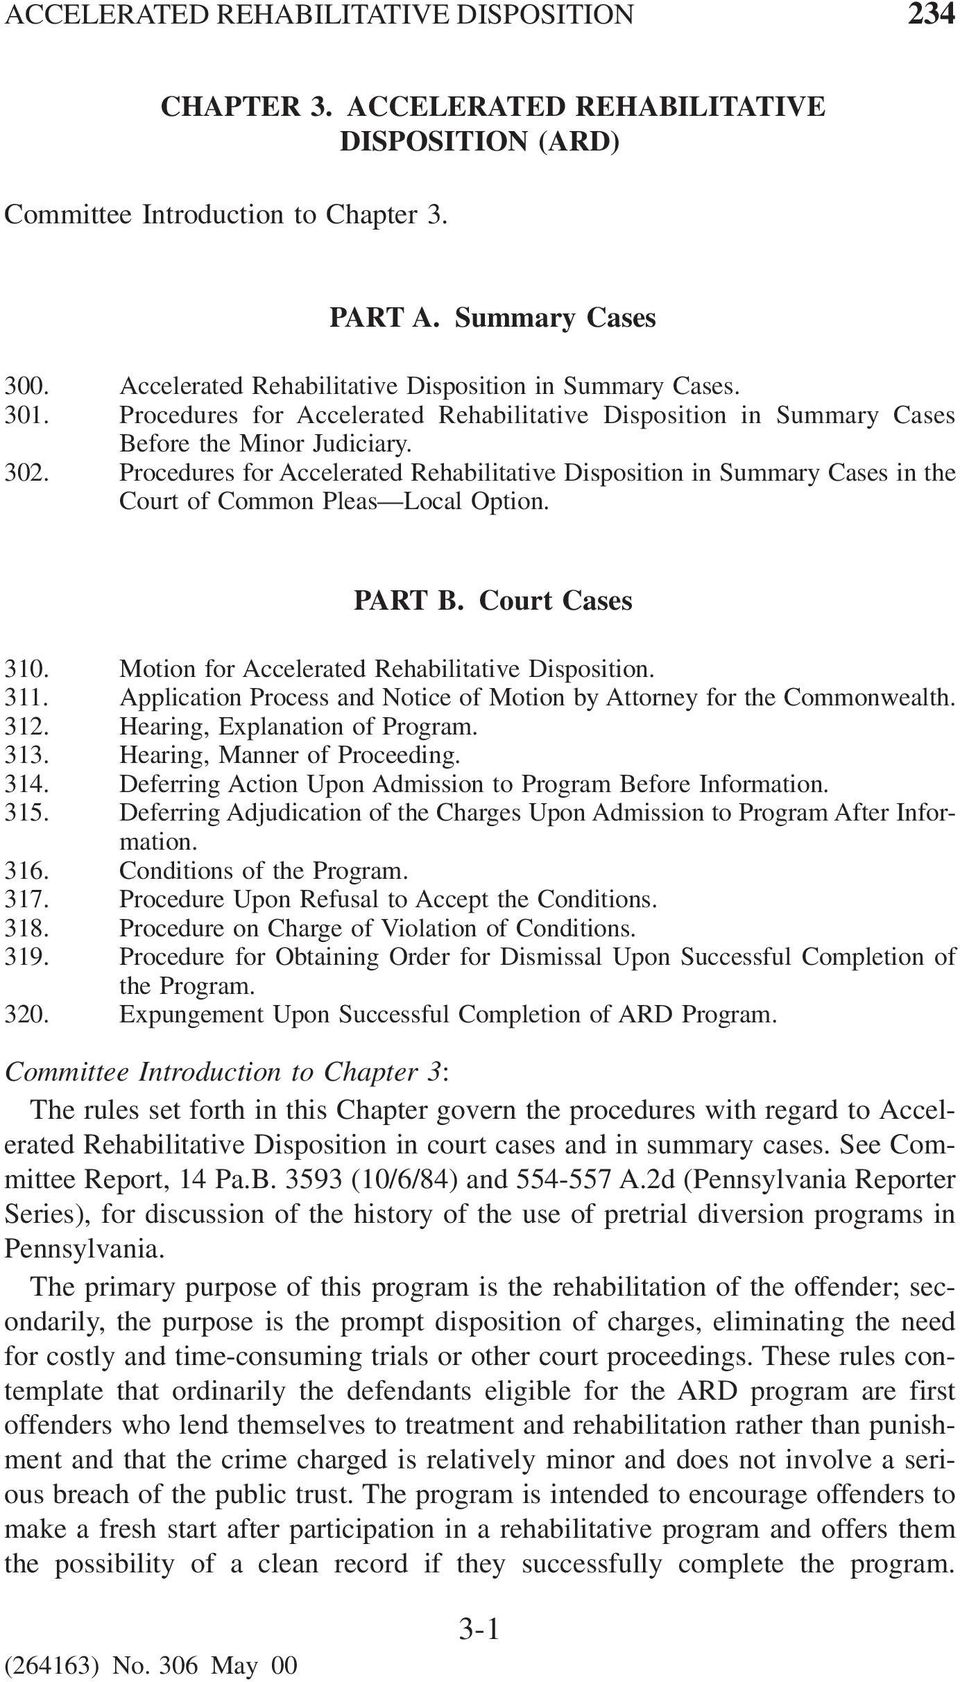 Procedures for Accelerated Rehabilitative Disposition in Summary Cases in the Court of Common Pleas Local Option. PART B. Court Cases 310. Motion for Accelerated Rehabilitative Disposition. 311.